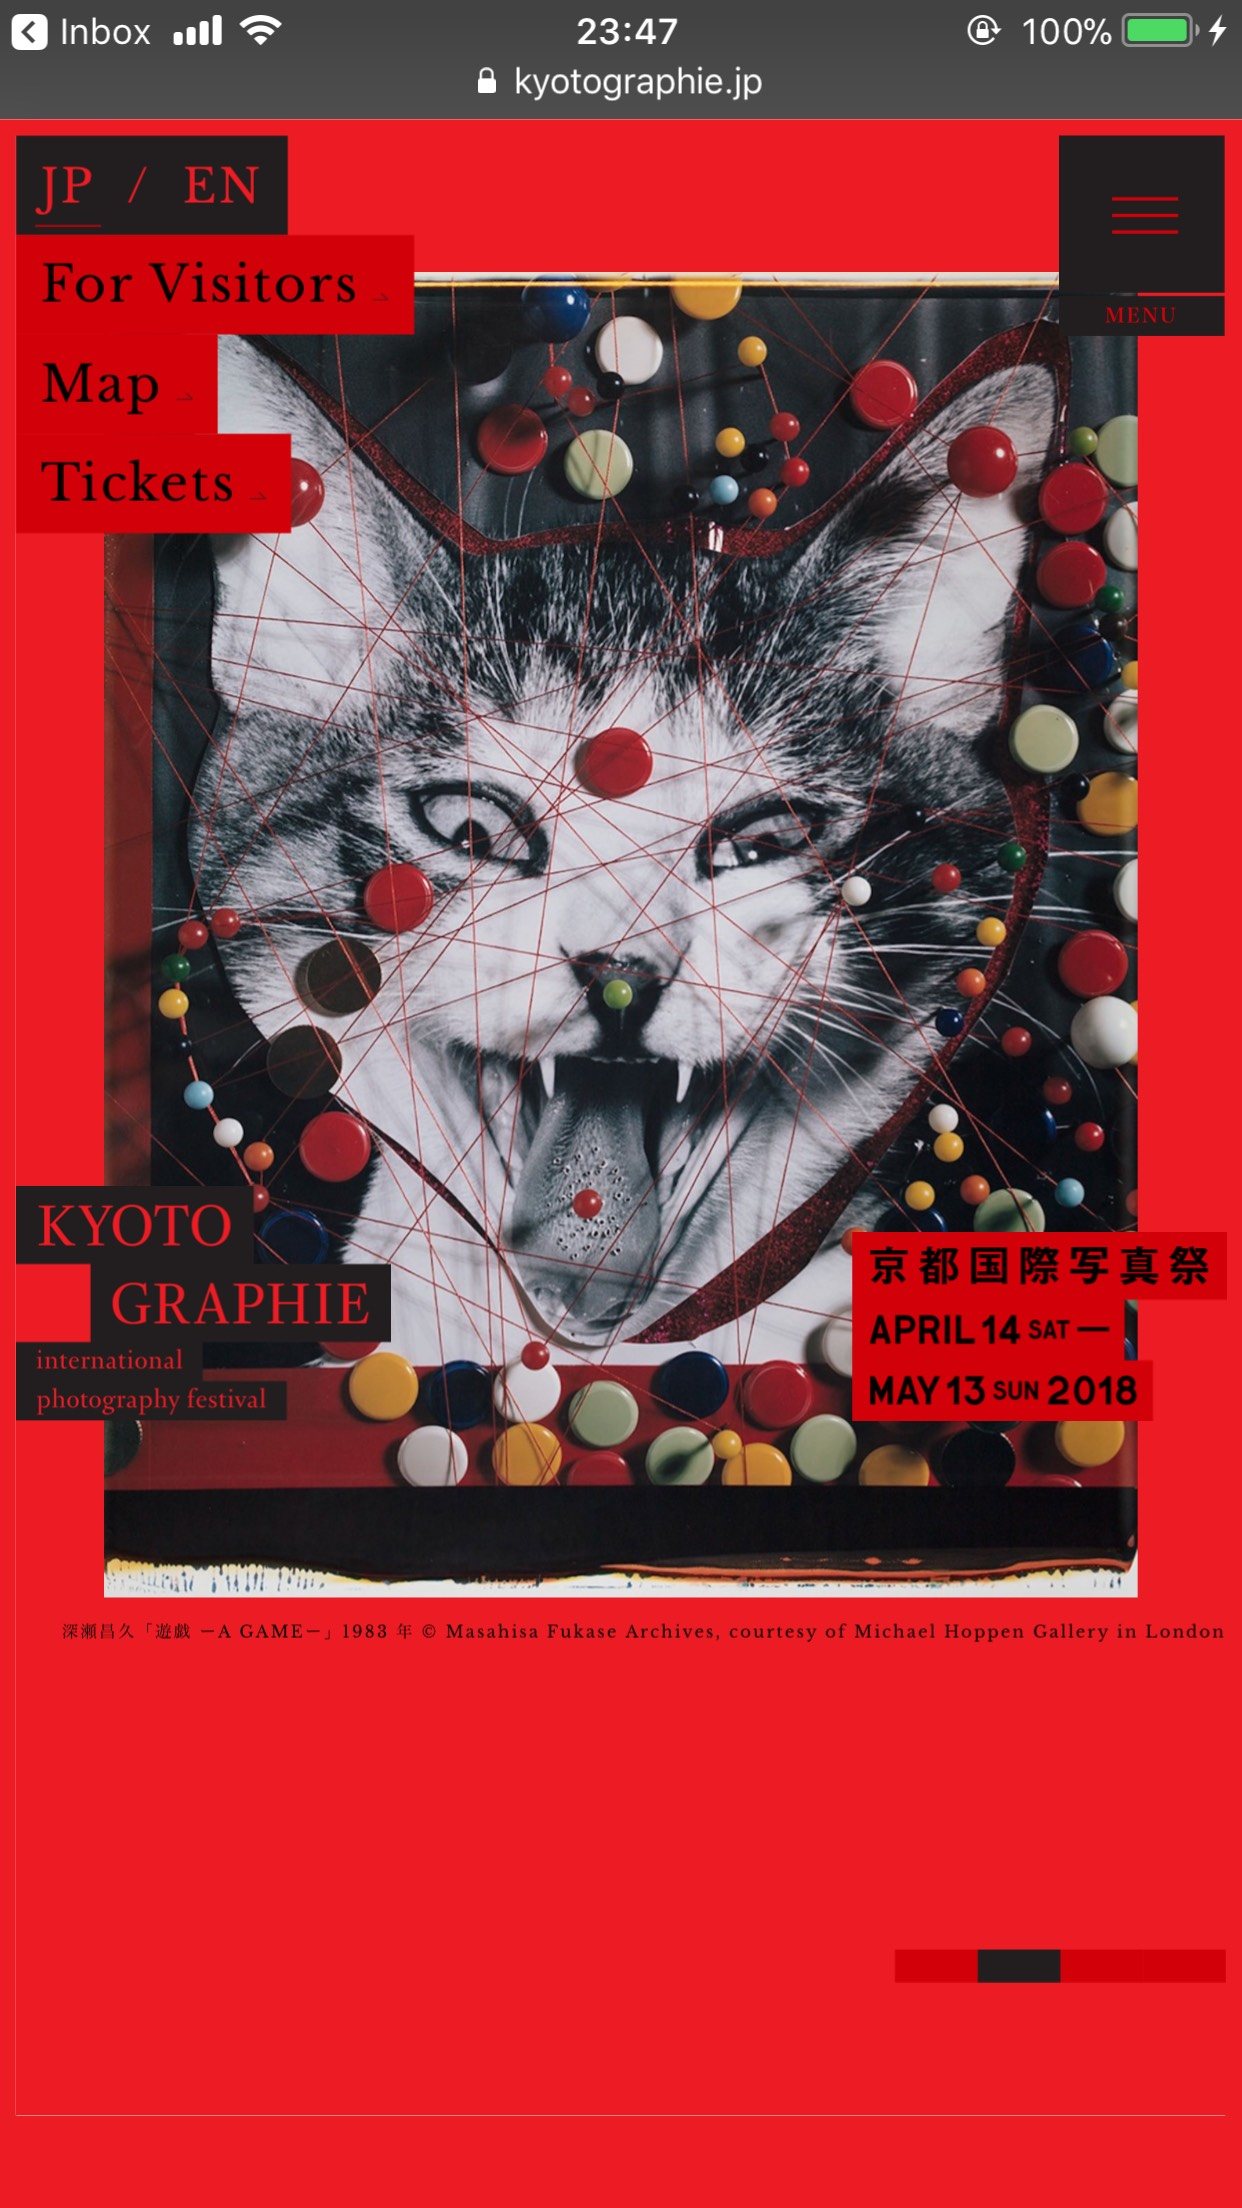 KYOTOGRAPHIE international photography festival